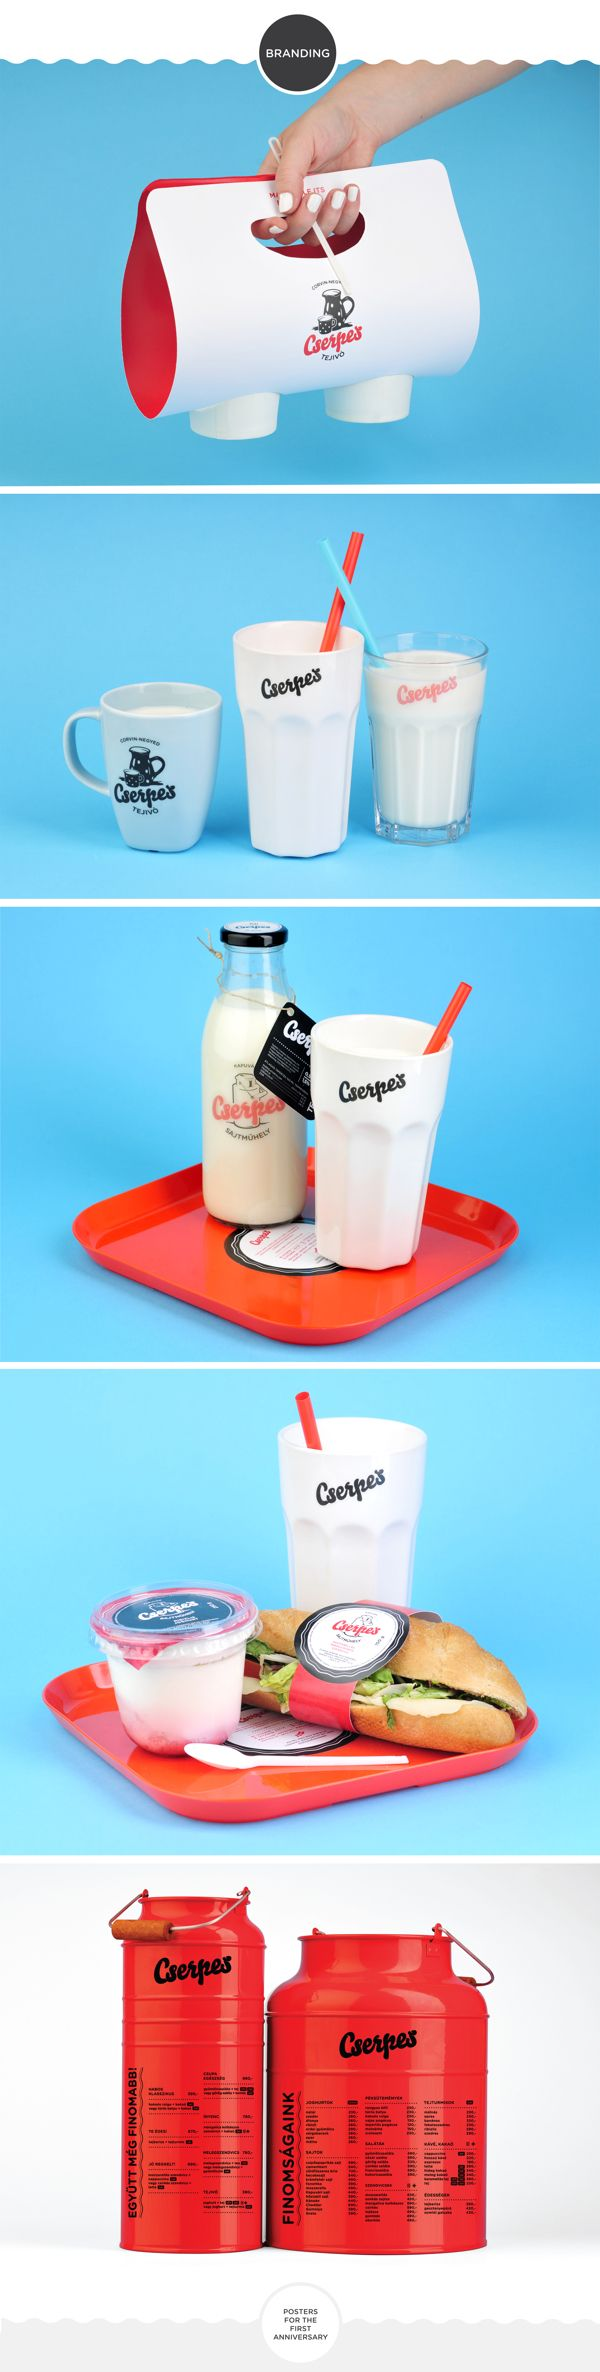 Cserpes rebranding / dairy products and milk bar / on Packaging Design Served